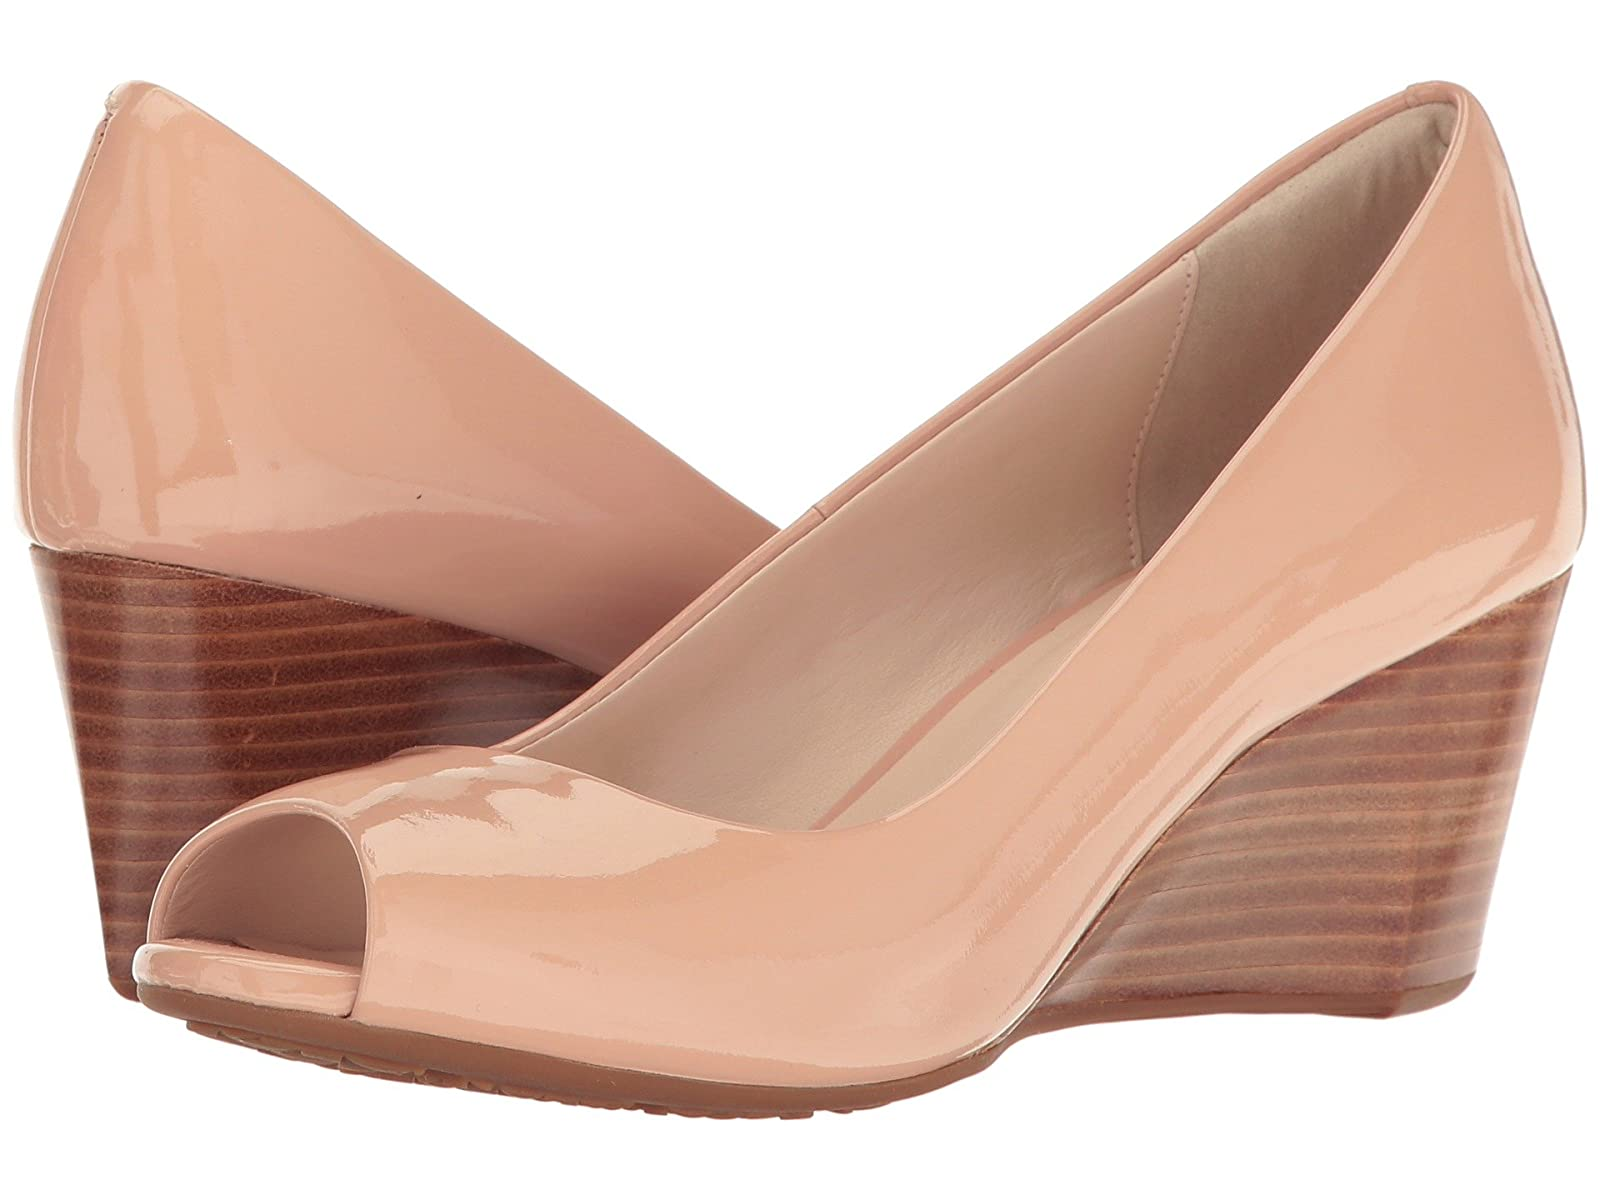 Cole Haan Sadie Open Toe Wedge 65mmAtmospheric grades have affordable shoes